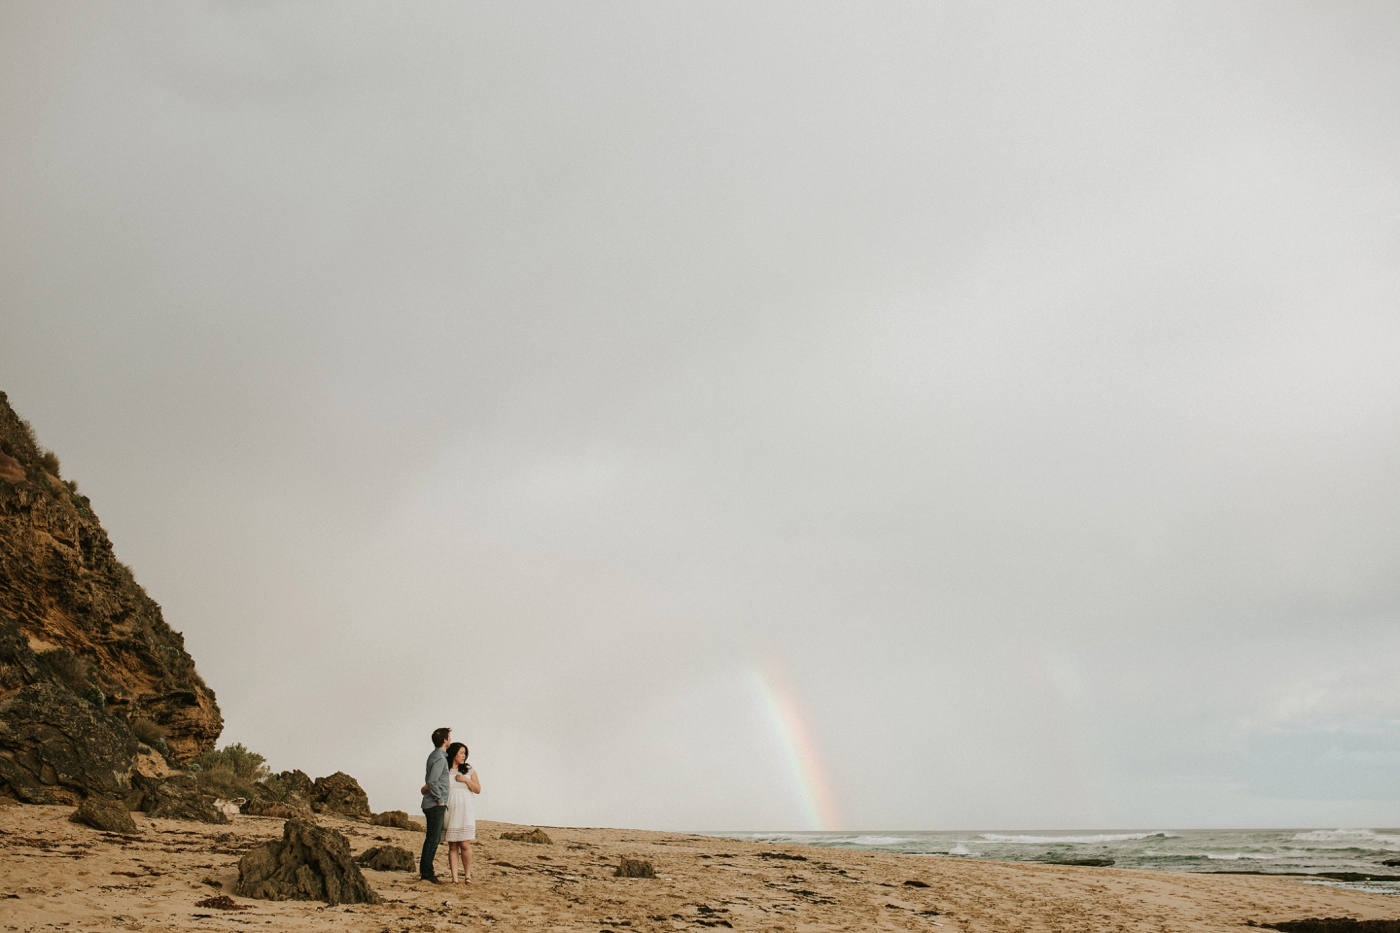 alliedave_mornington-peninsula-back-beach-relaxed-engagement-session_melbourne-candid-wedding-photographer_21